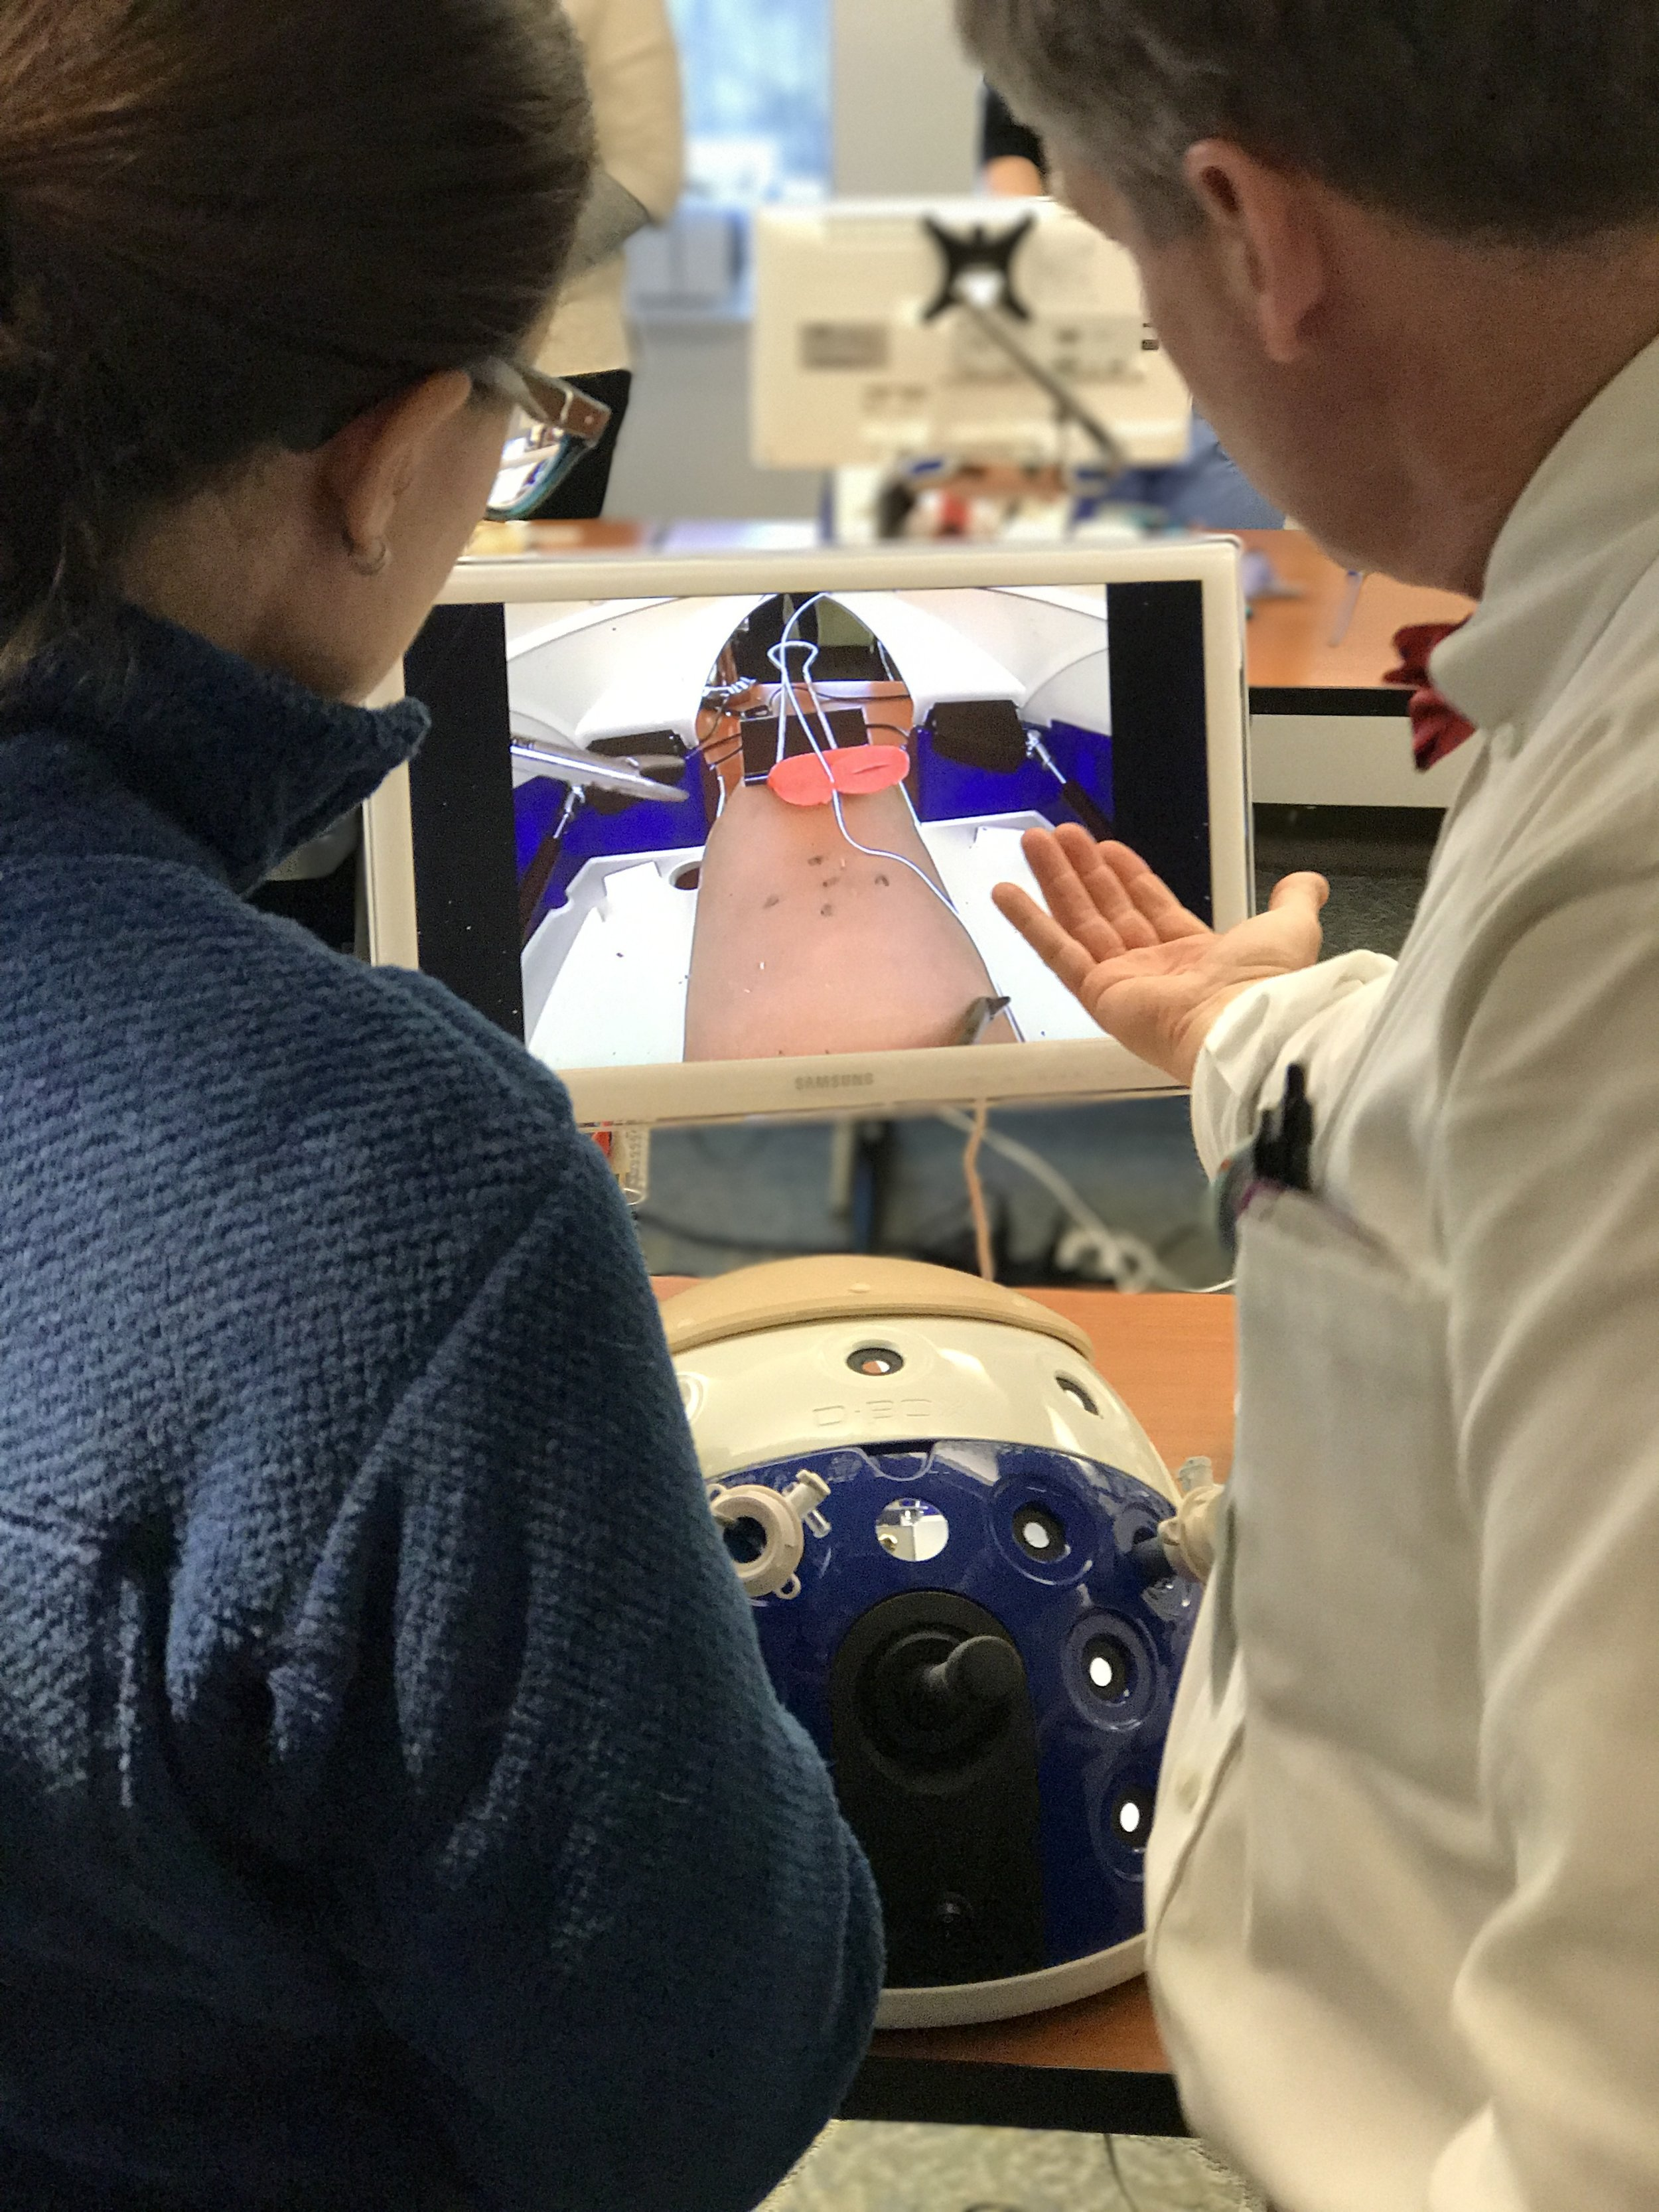 Dry lab focused on suturing and knot-tying